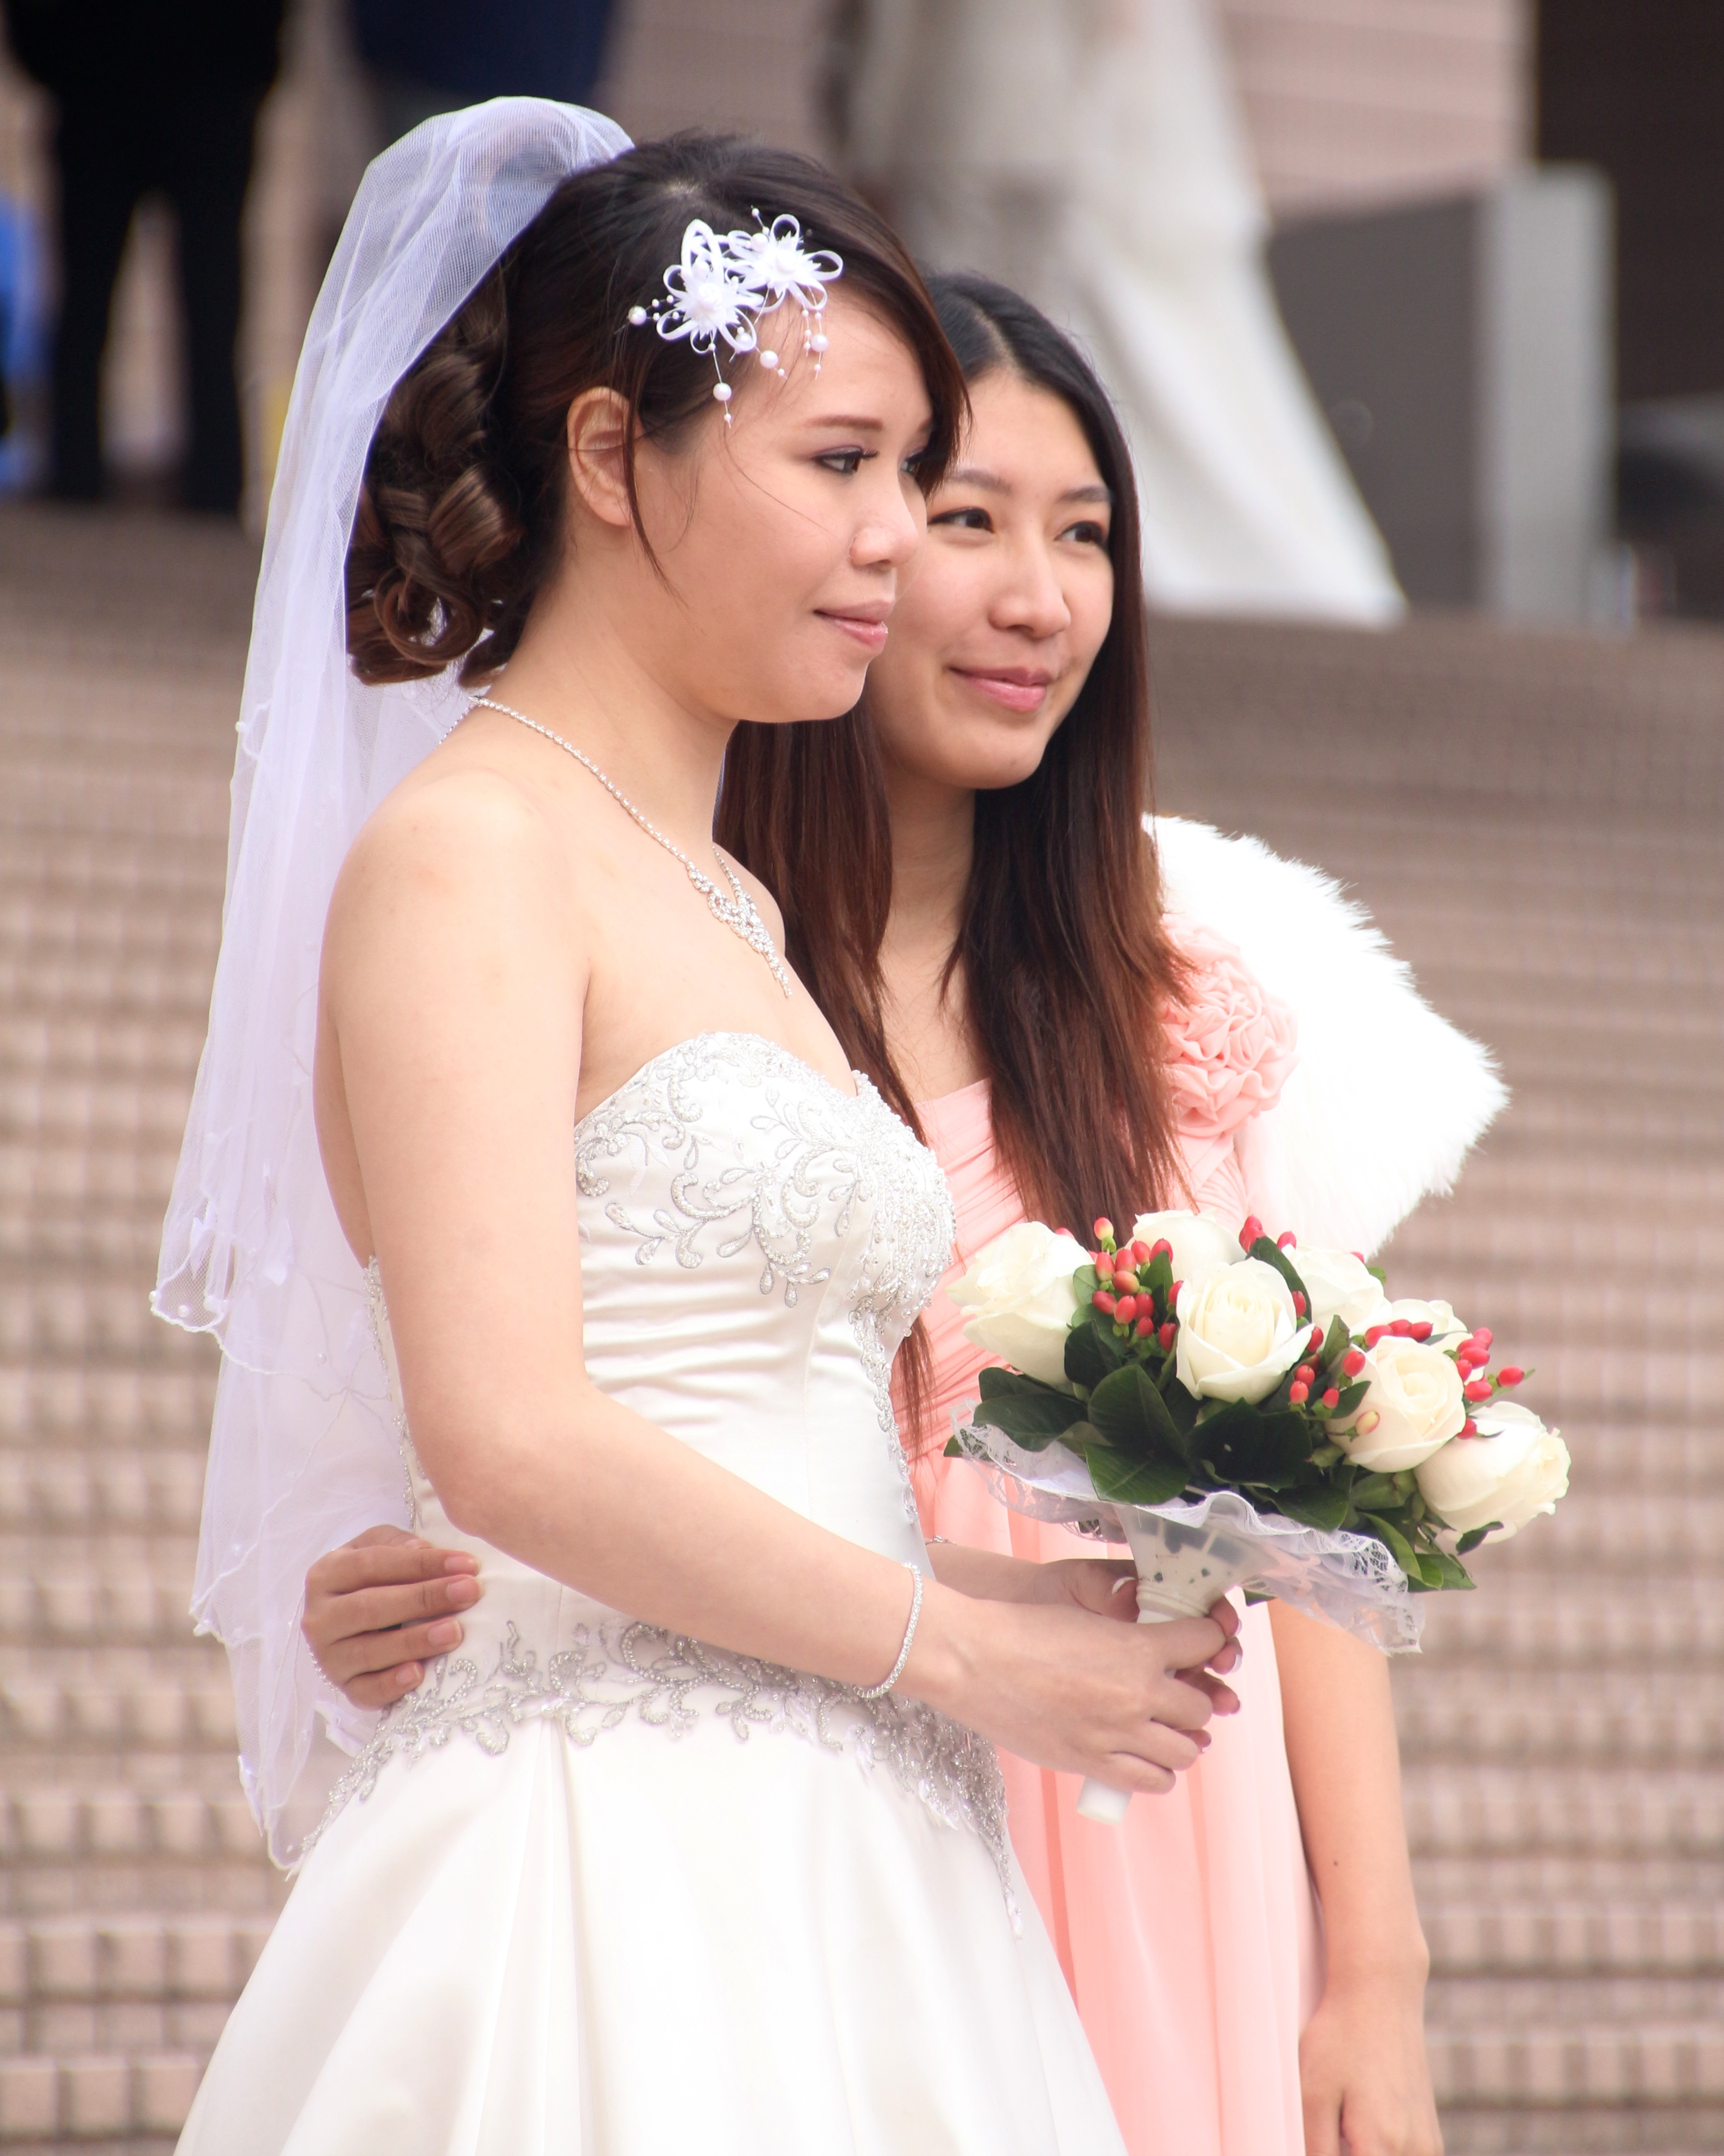 bride and bridesmaid author lucke charlie